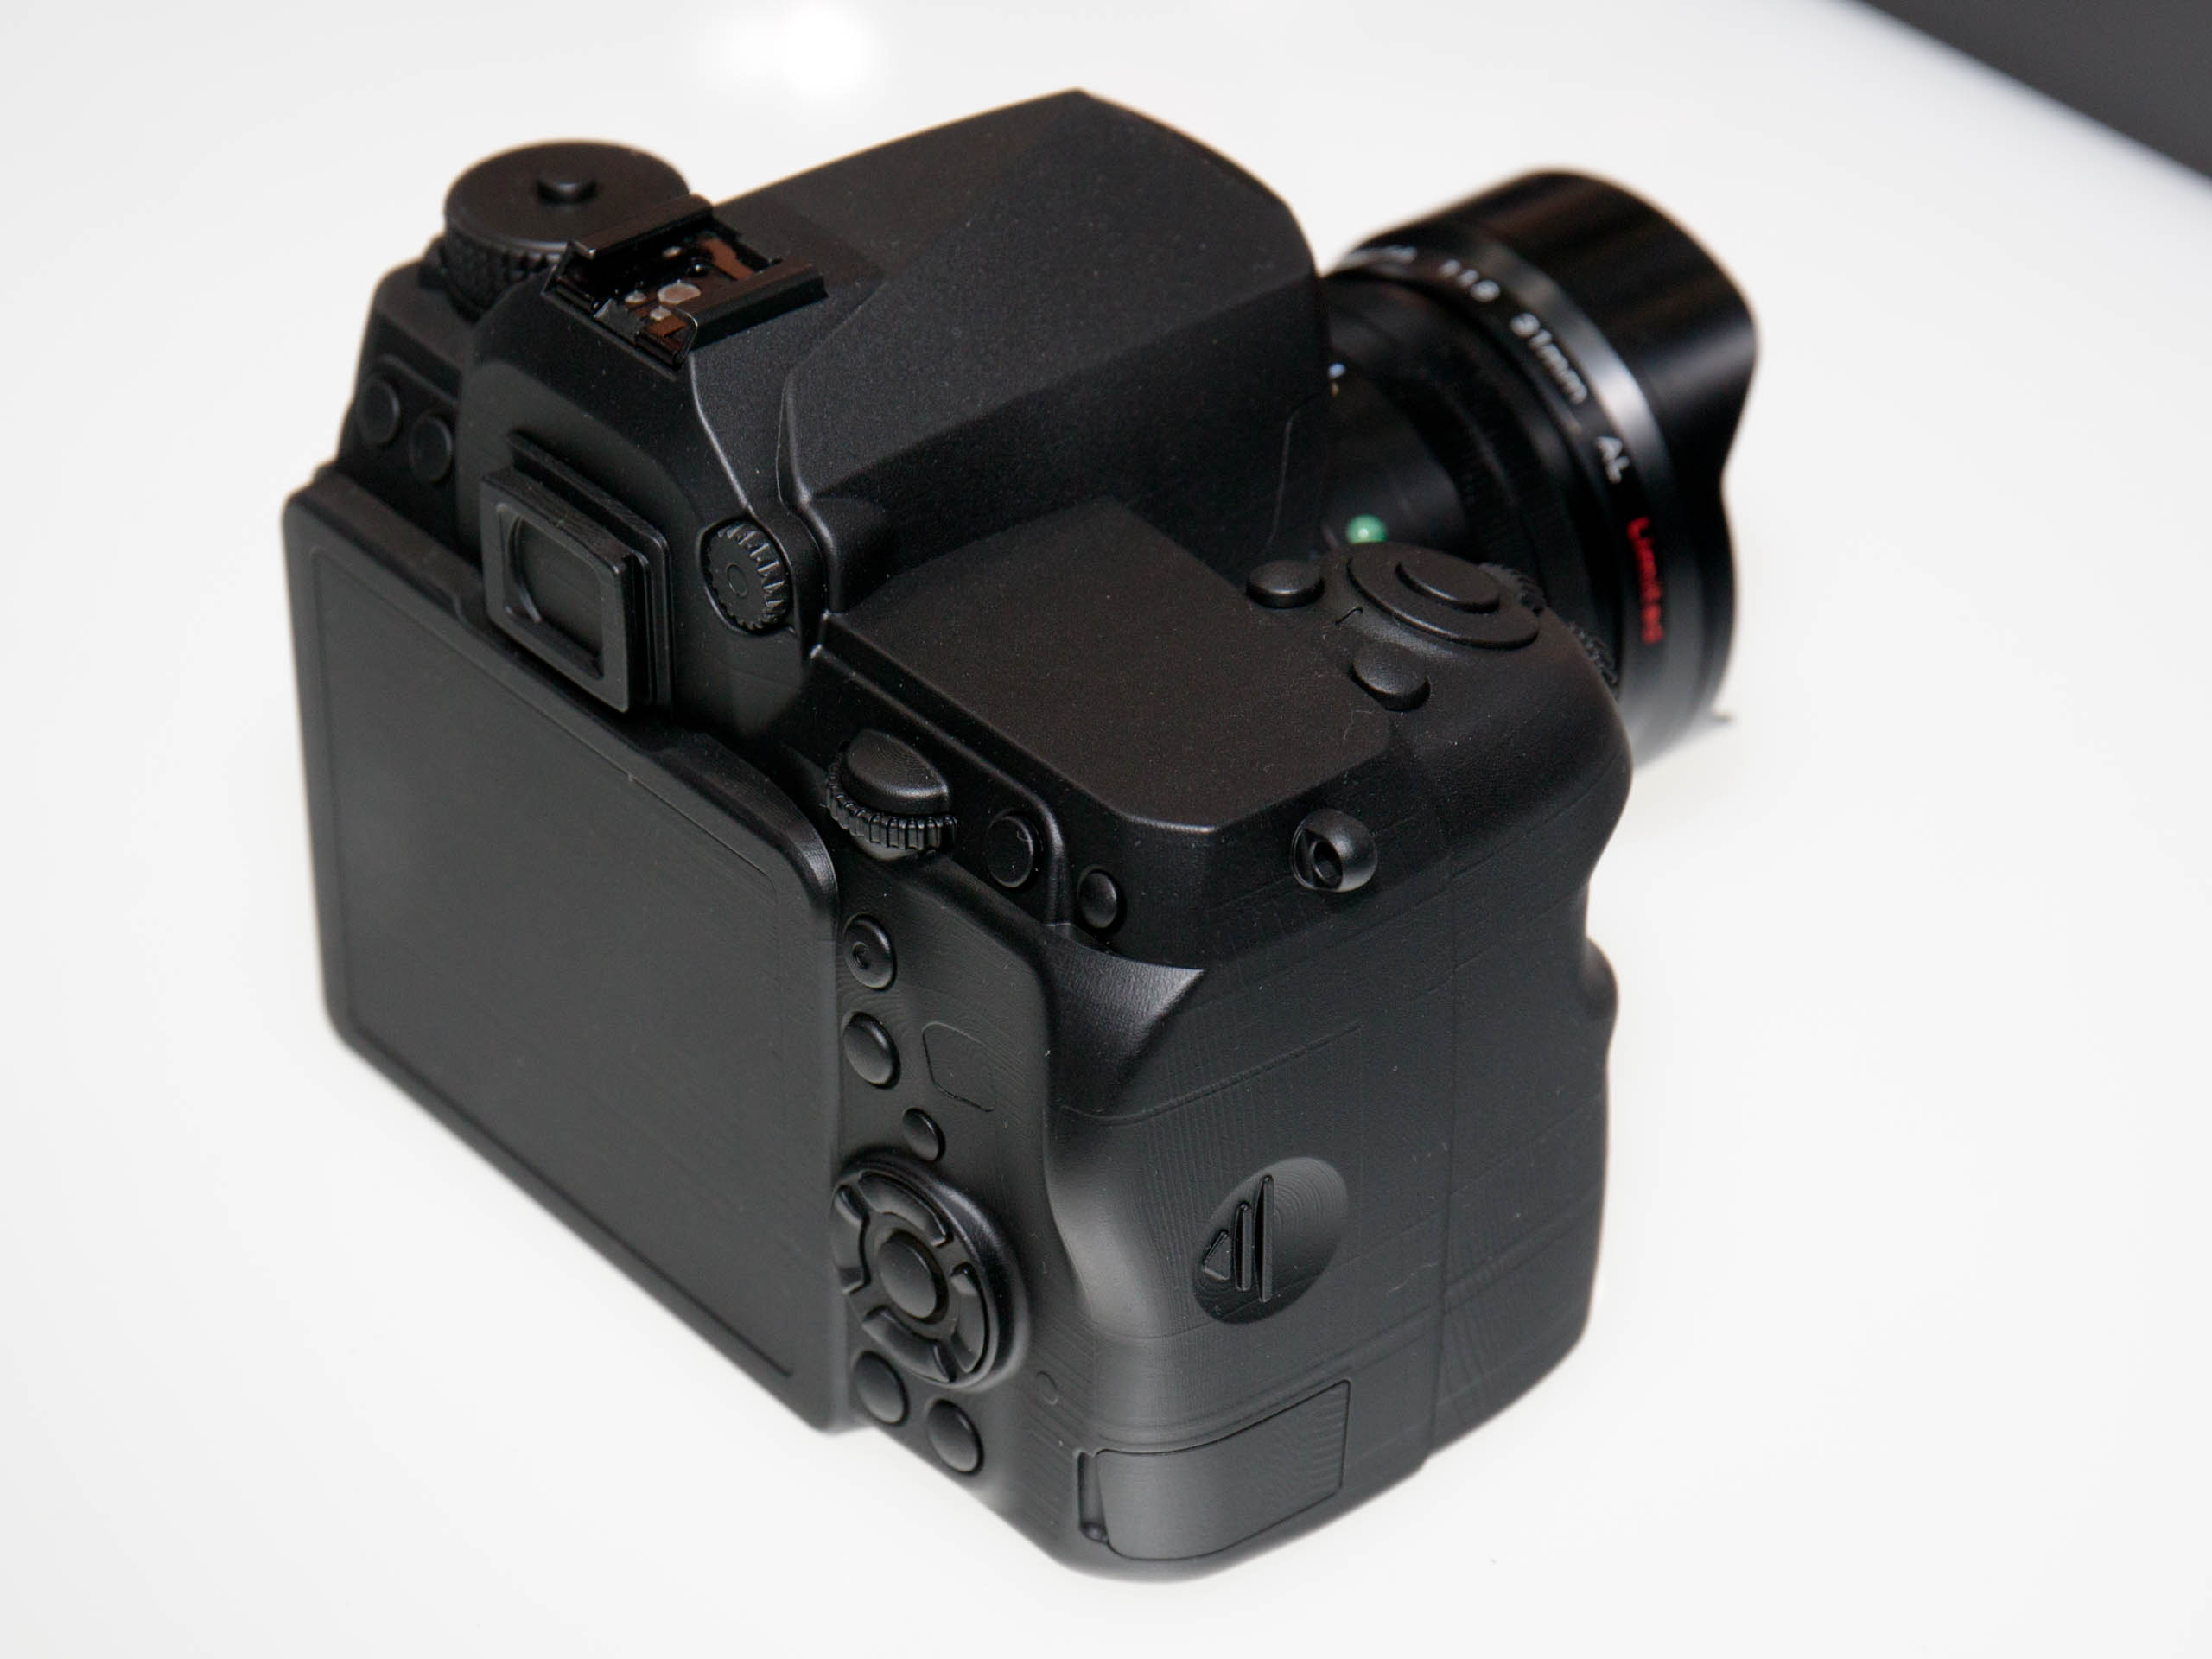 File:Pentax full-frame DSLR mock-up rear 2015 CP+.jpg - Wikimedia ...